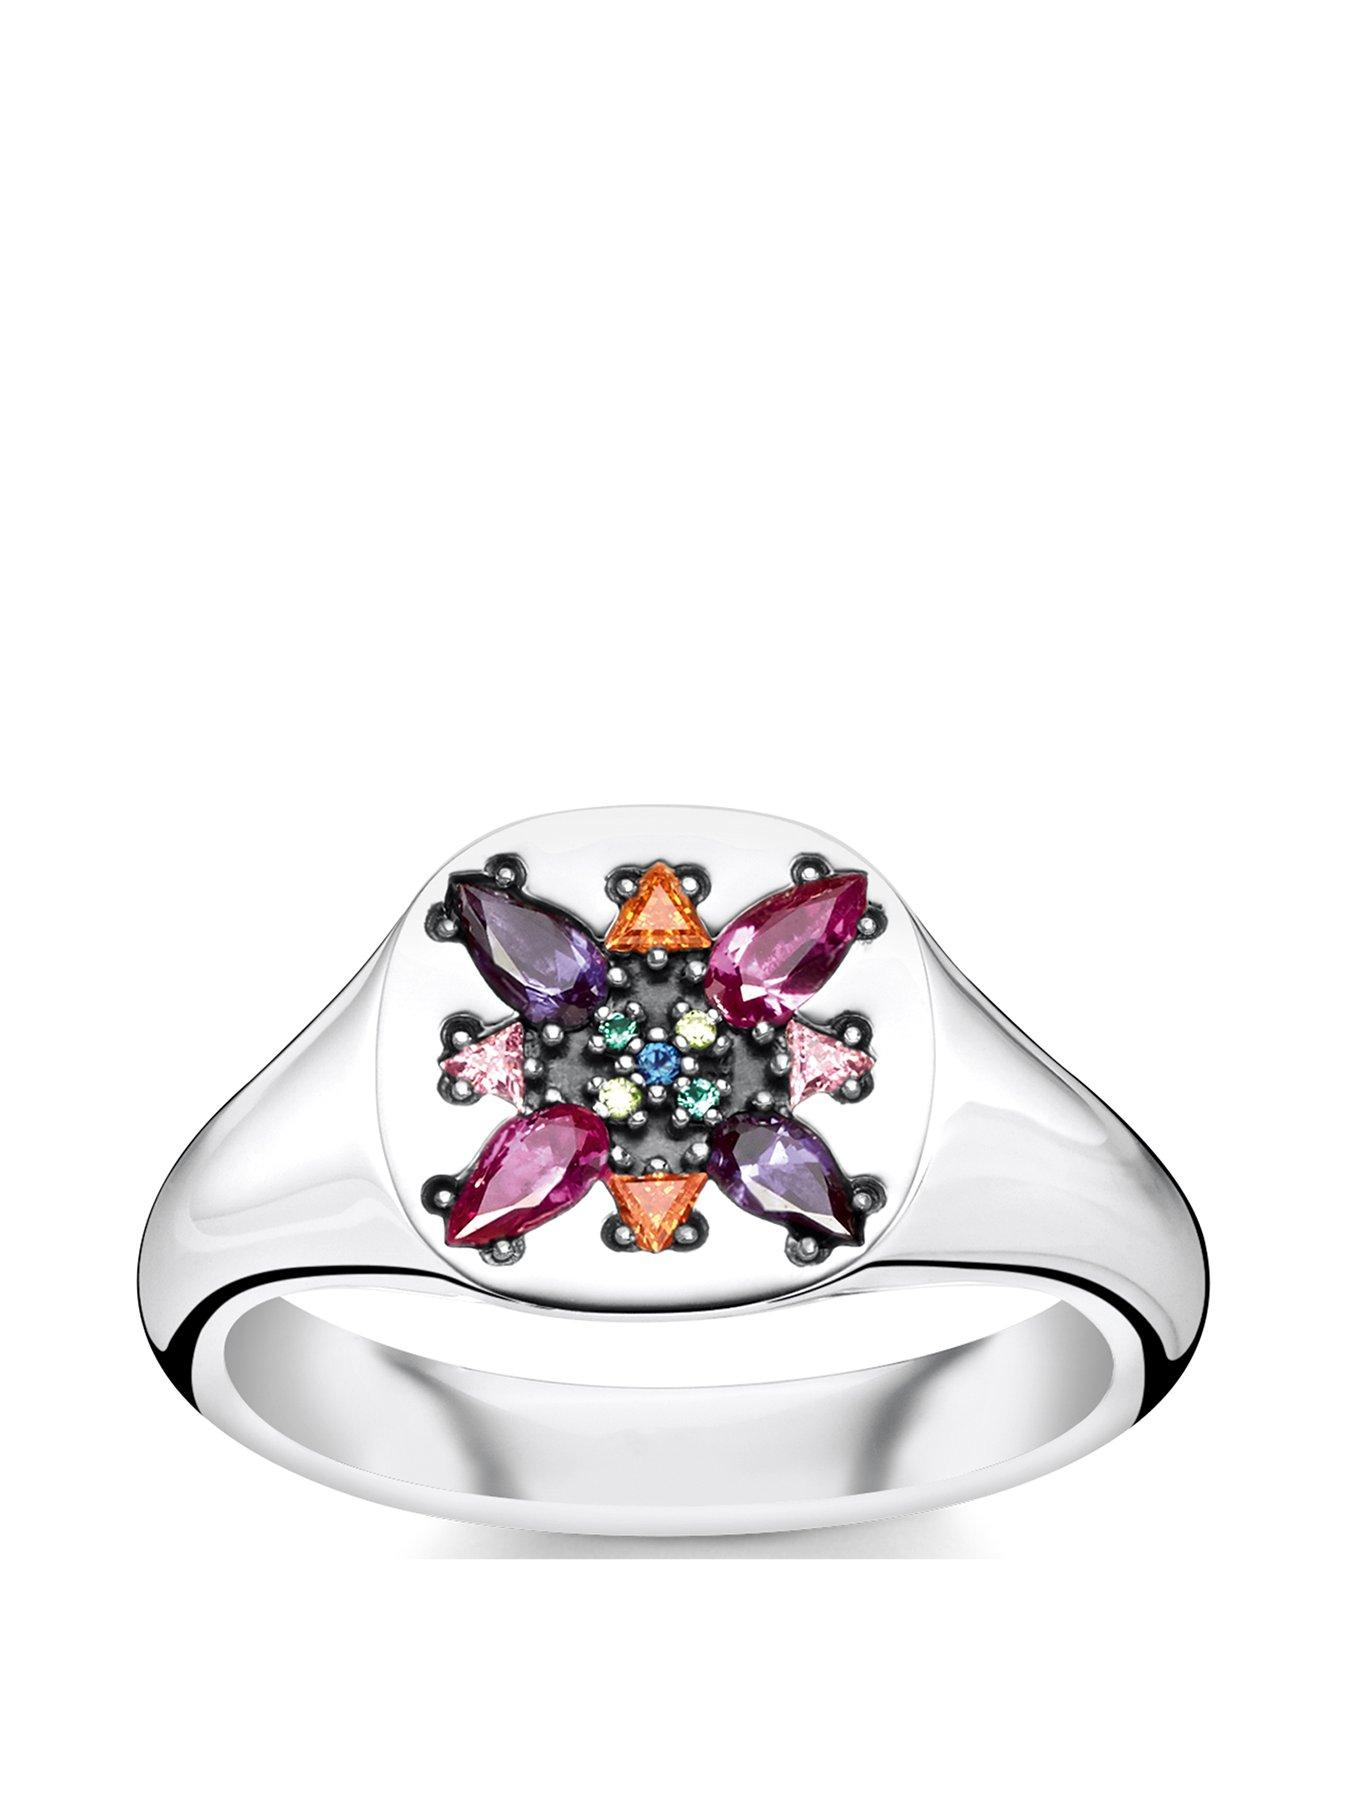 Princess Kylie Sterling Silver Eternal Flame Ring Size 6